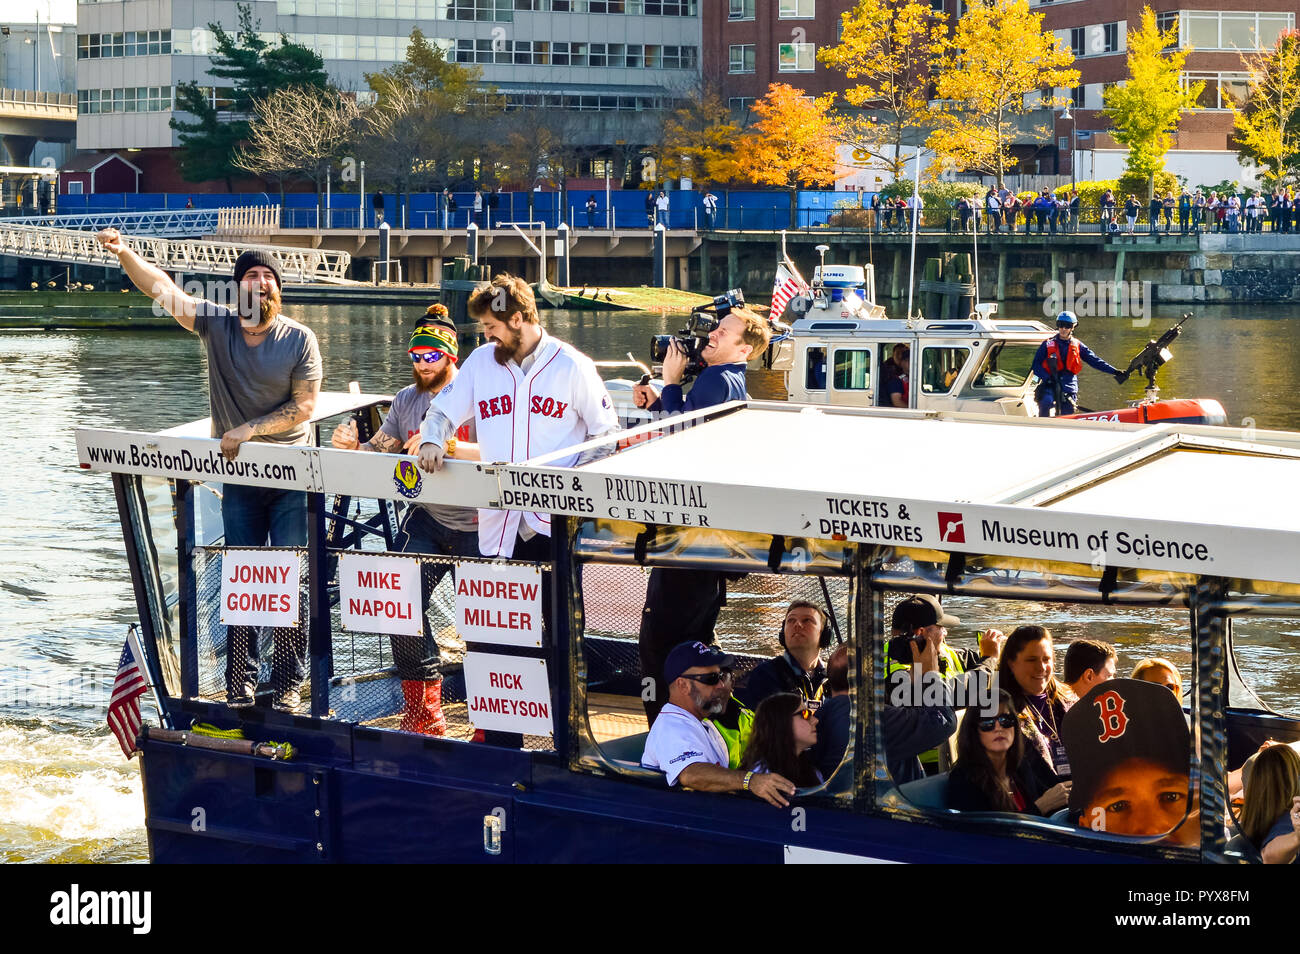 2013 World Series Champions Red Sox Duck Boat Parade Stock